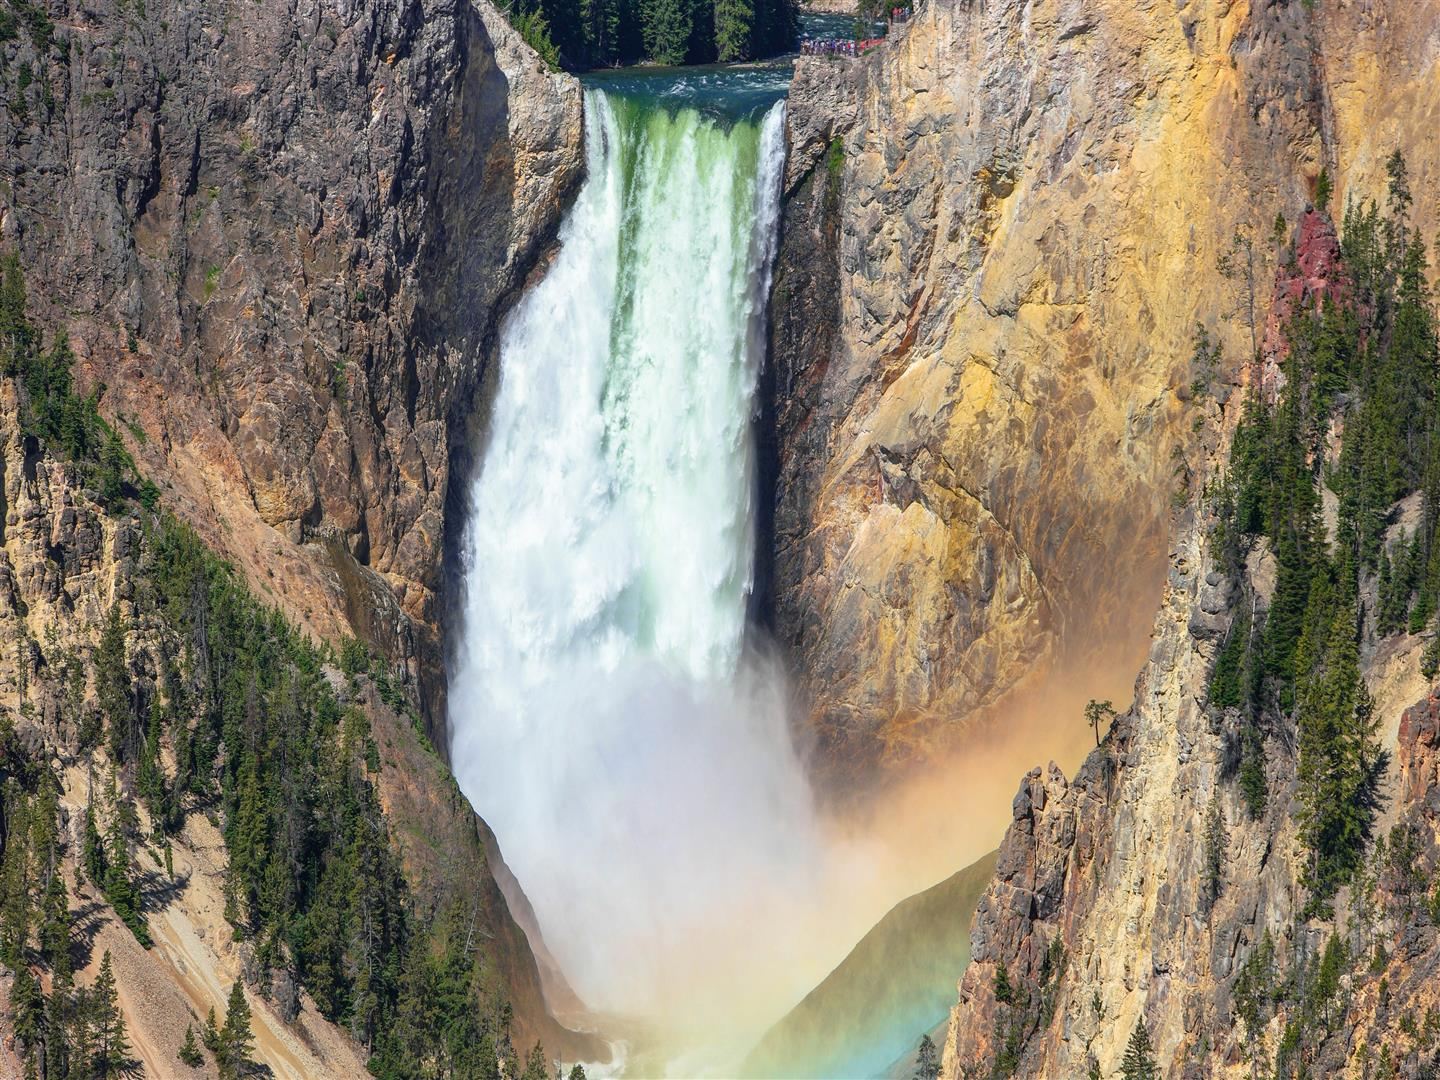 1440x1080 5K Wallpaper of Upper Yellowstone Waterfall in US